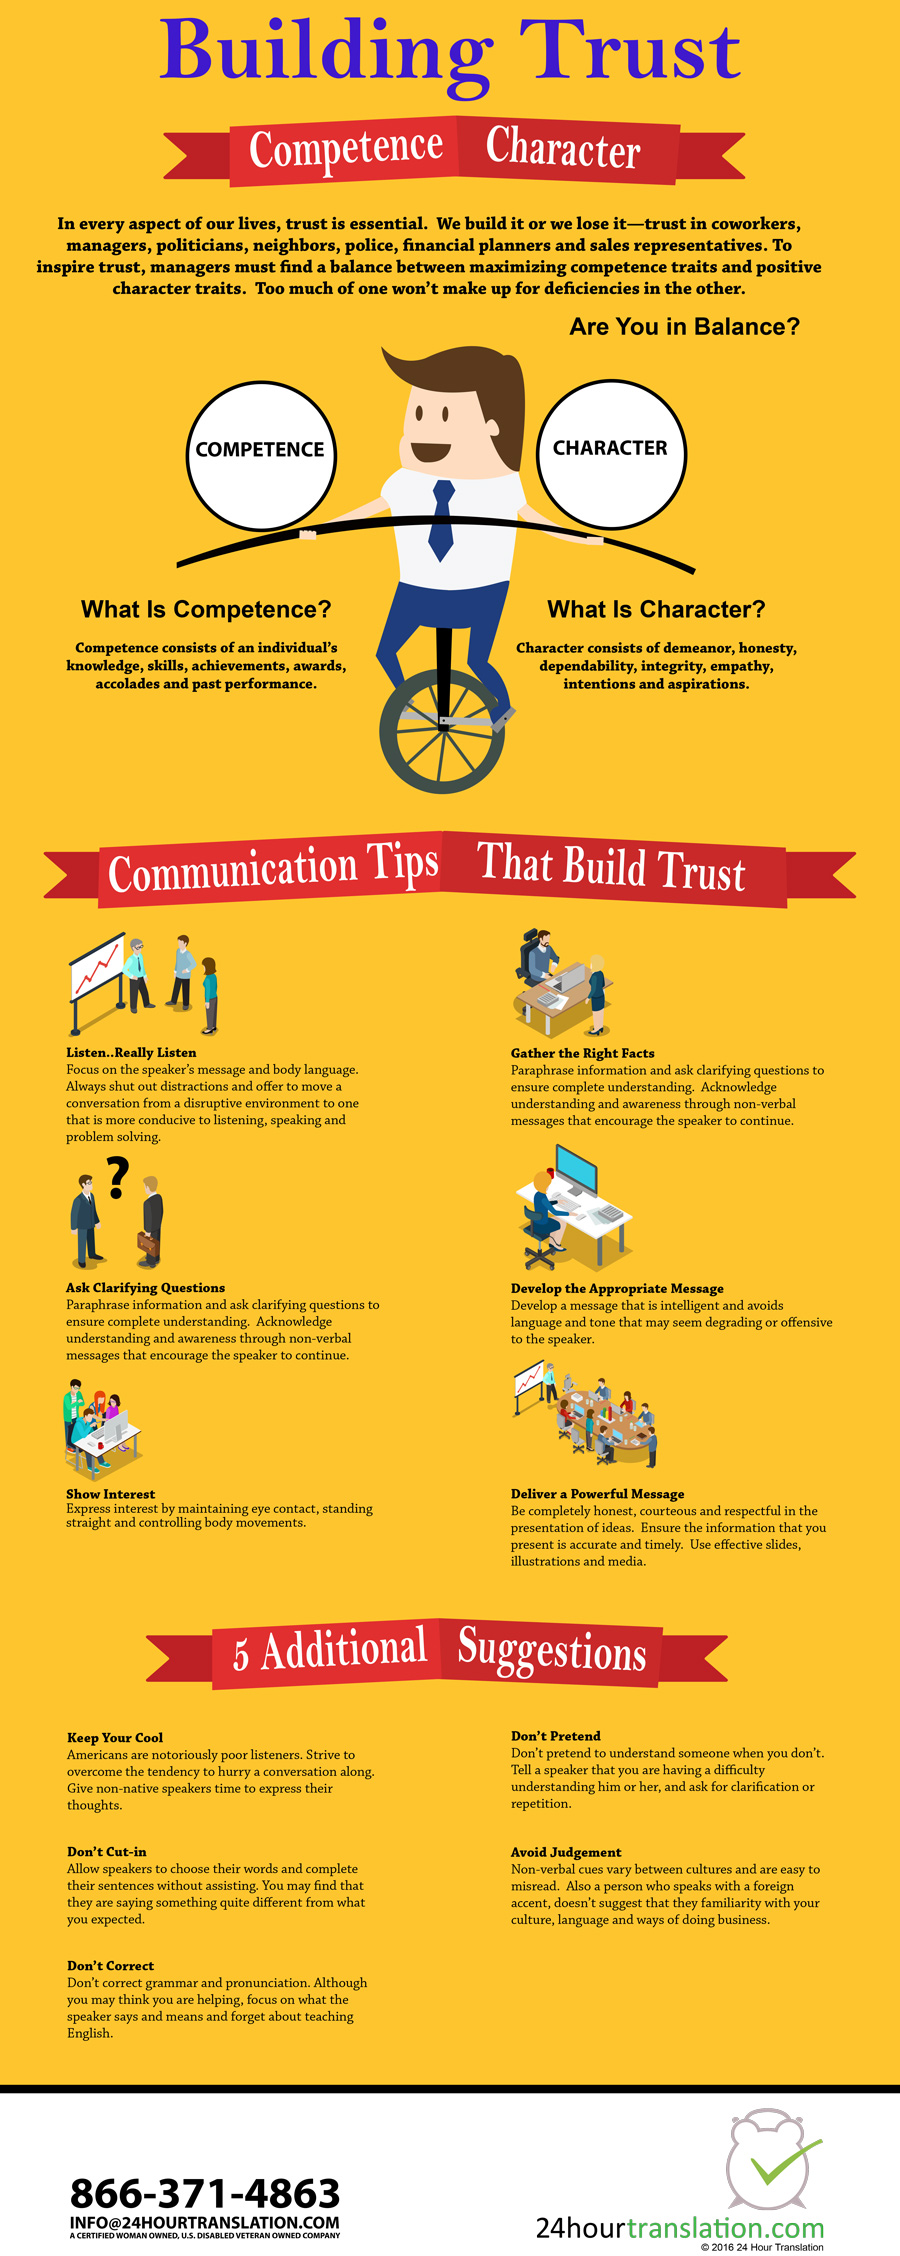 5 Listening Suggestions and Tips That Build Trust